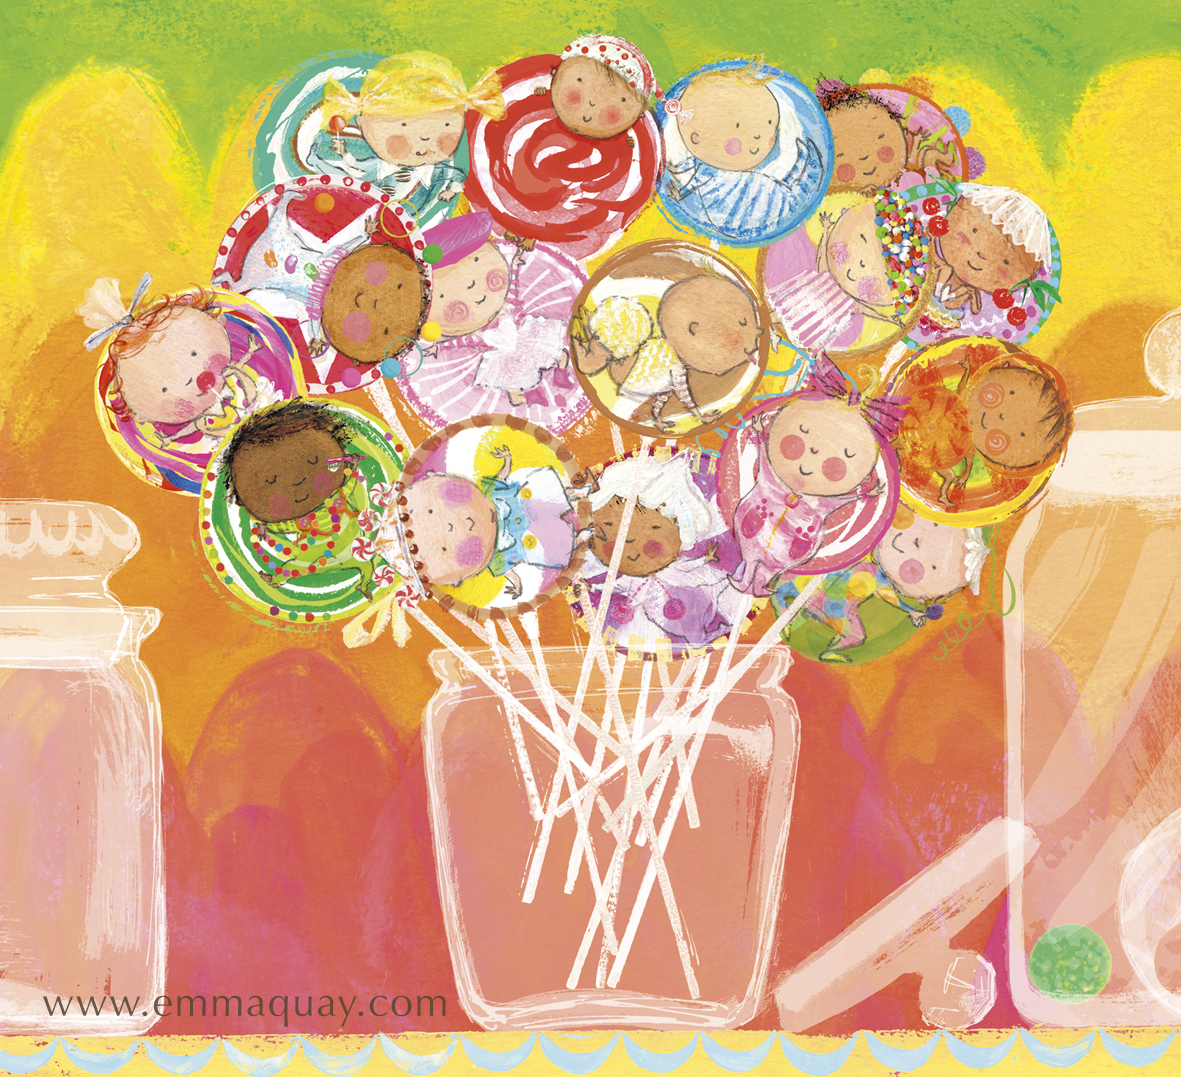 """If babies were lollipops"" illustration from MY SUNBEAM BABY by Emma Quay (ABC Books) - www.emmaquay.com"